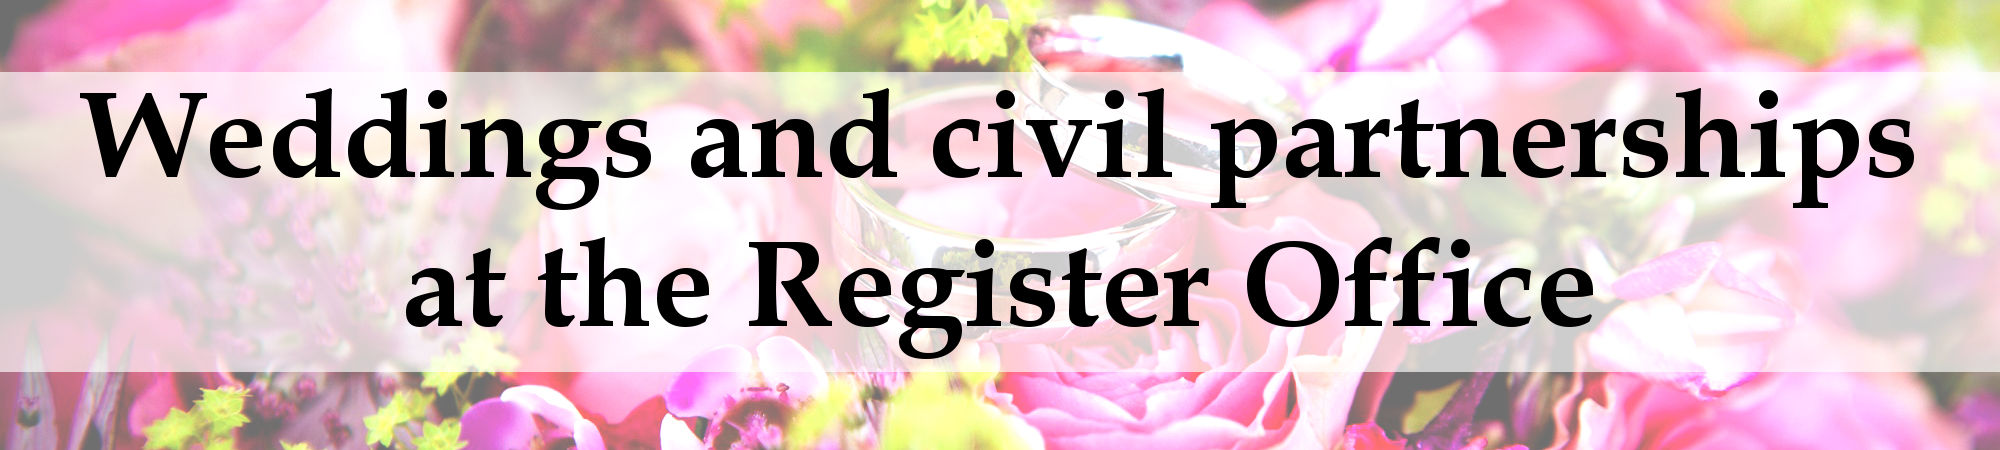 Weddings and civil partnerships at the Register Office